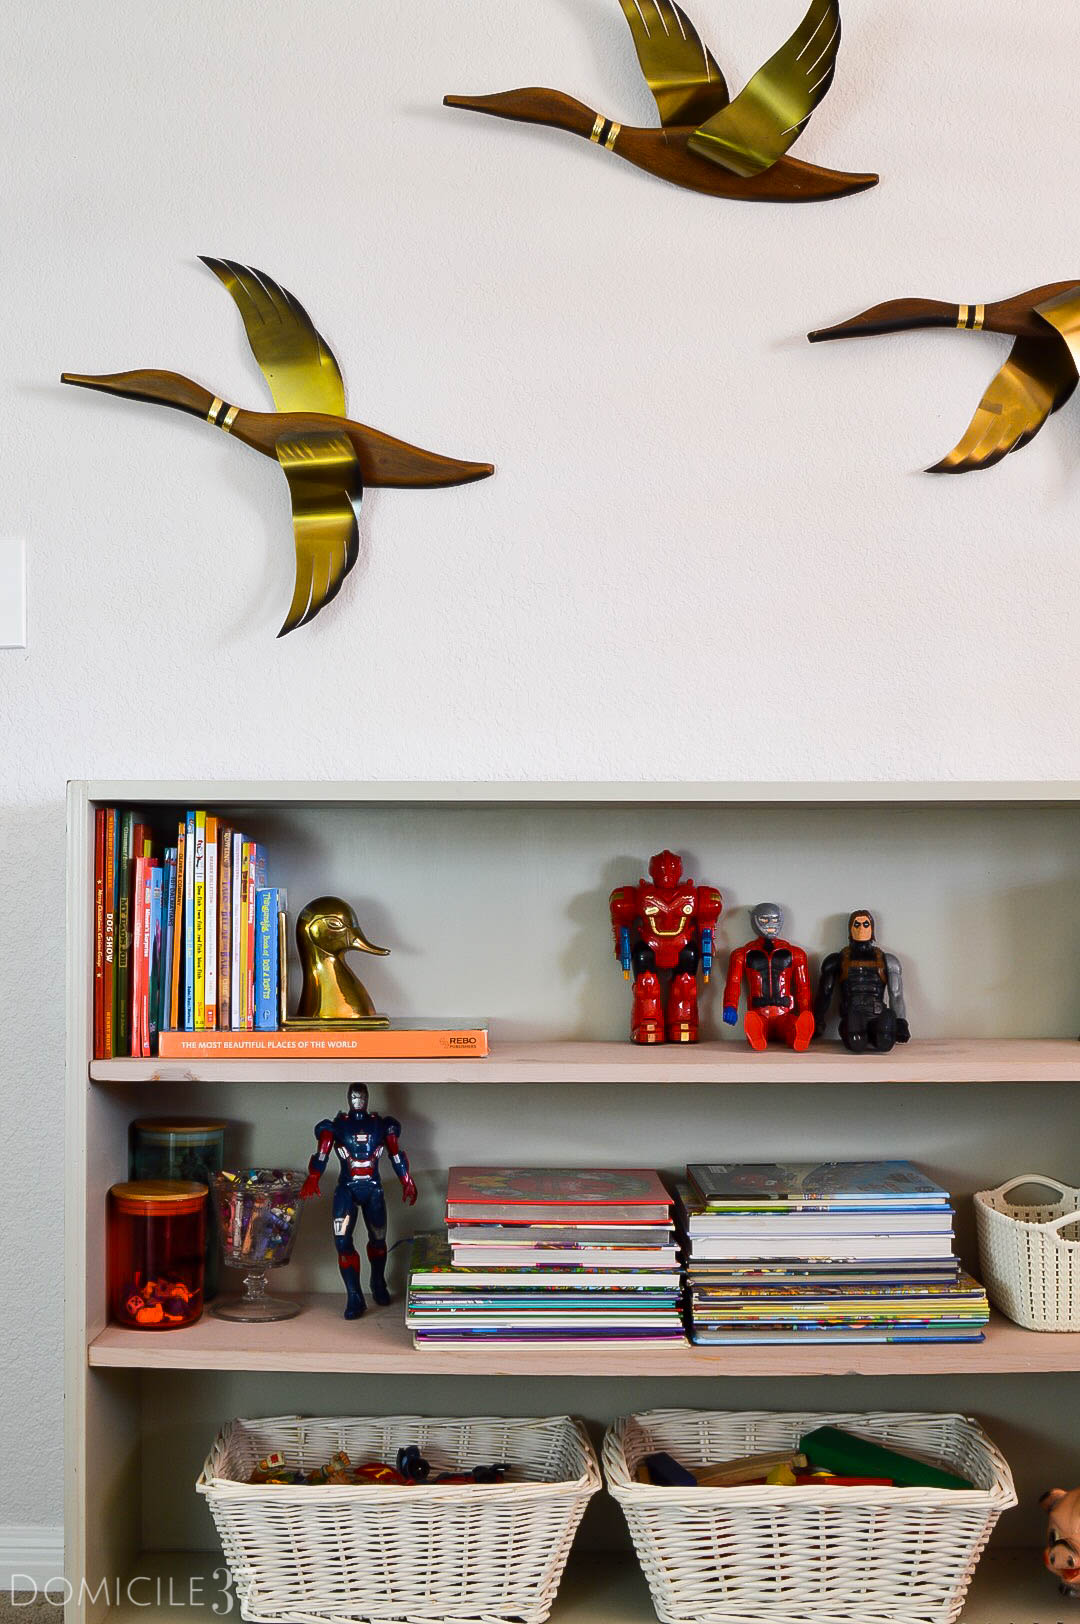 Vintage Eclectic little boy's room | Wes Anderson inspired bedroom | colorful boy's room | collected bedroom | eclectic bedroom ideas | vintage bedroom ideas | colorful bedroom ideas | kids bookshelf idea | shelf styling for boy's room | vintage ducks